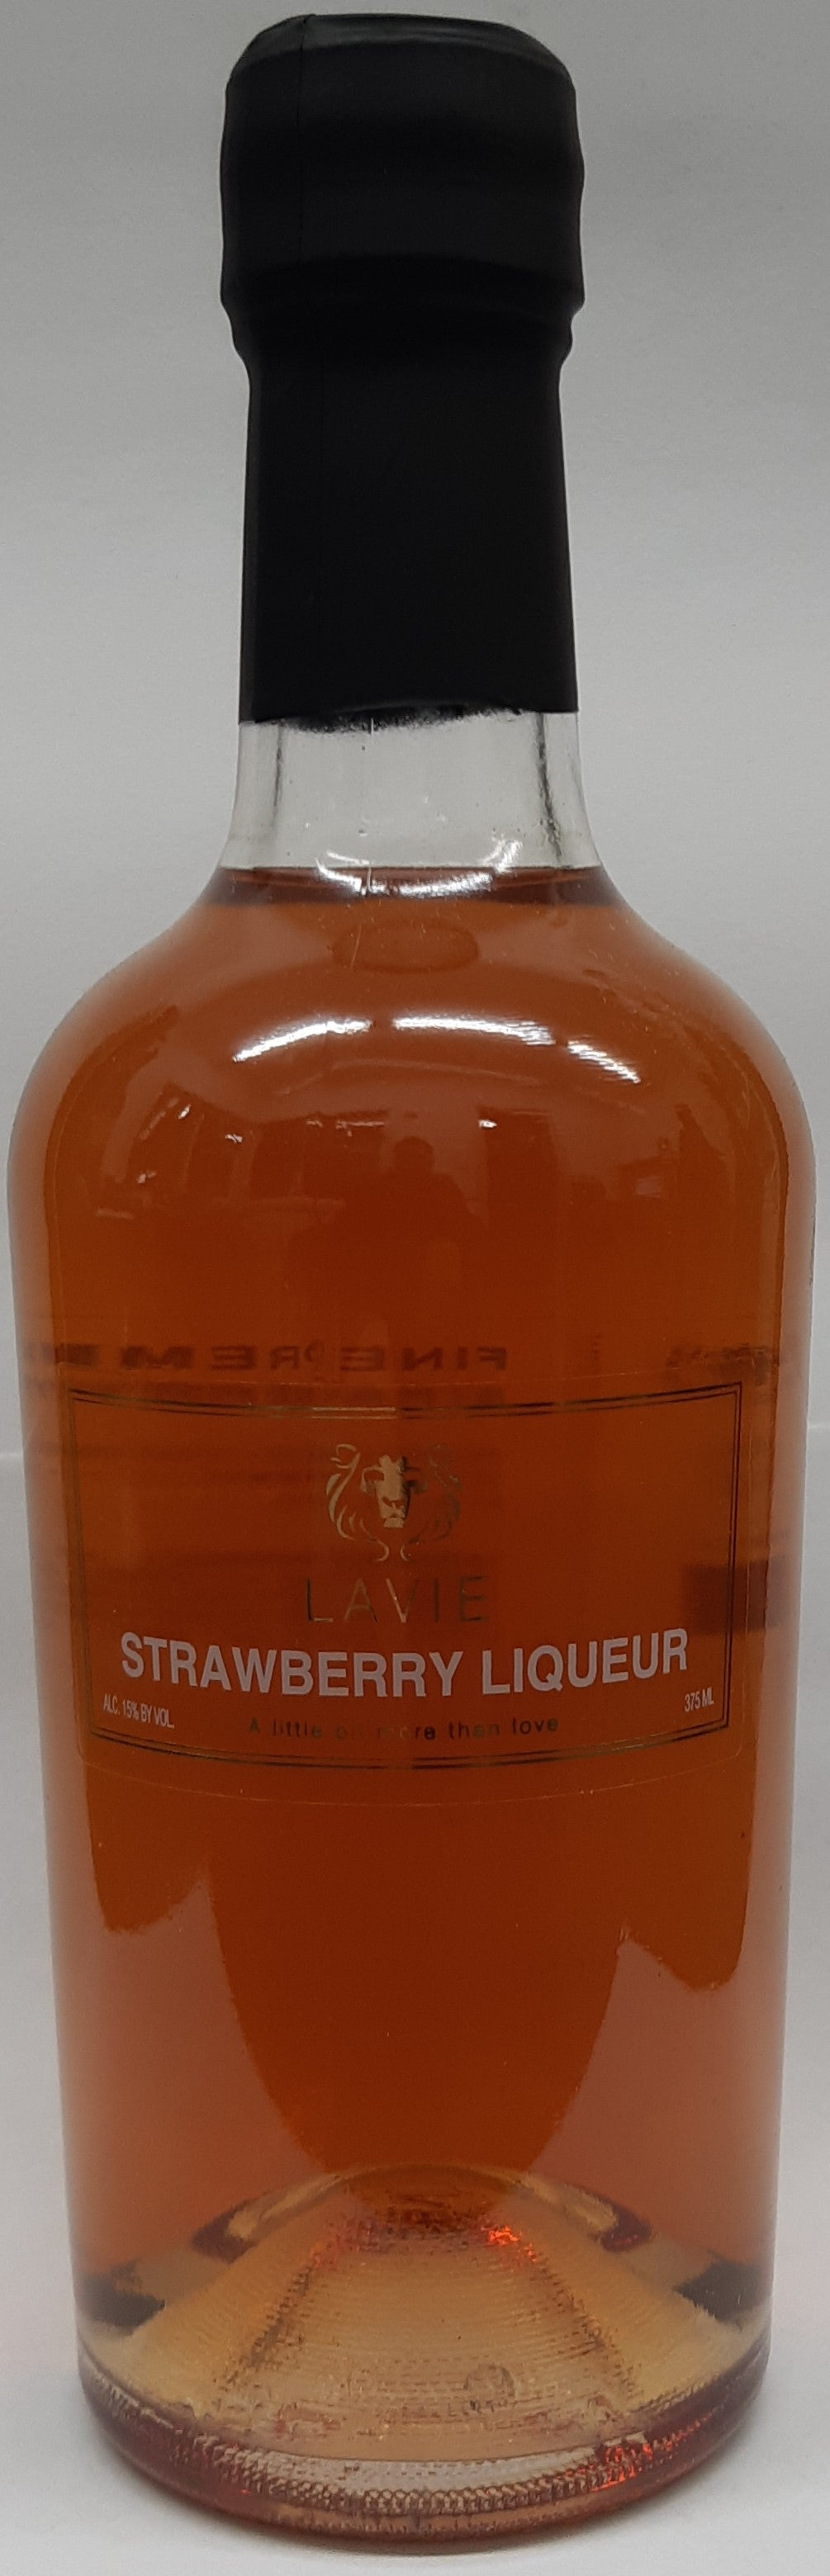 Lavie Strawberry Supreme Liqueur 375Ml